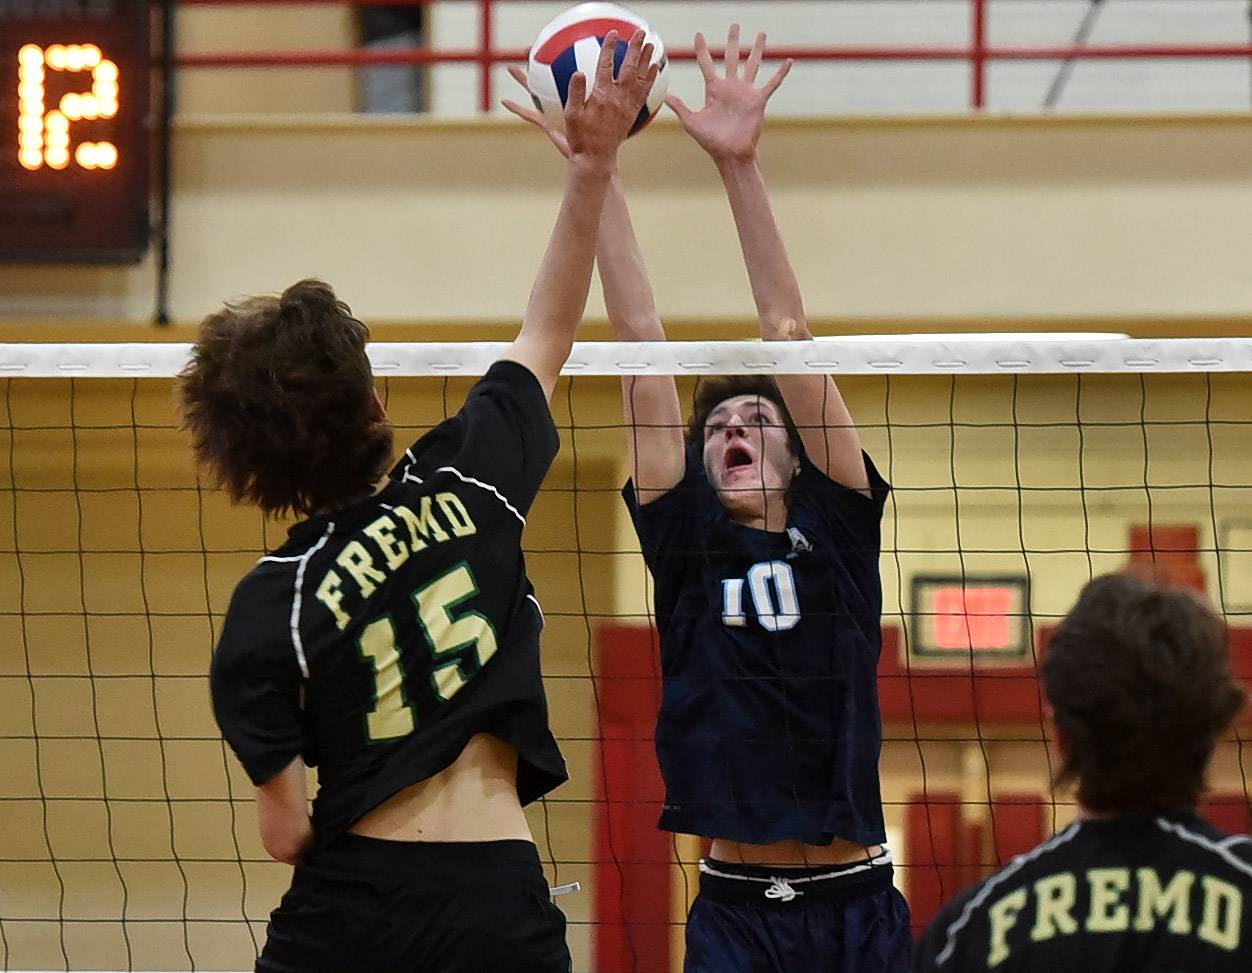 Prospect's Glenn Wiley goes up for a block on Fremd's Rocco Stella during the boys volleyball tournament at Schaumburg.